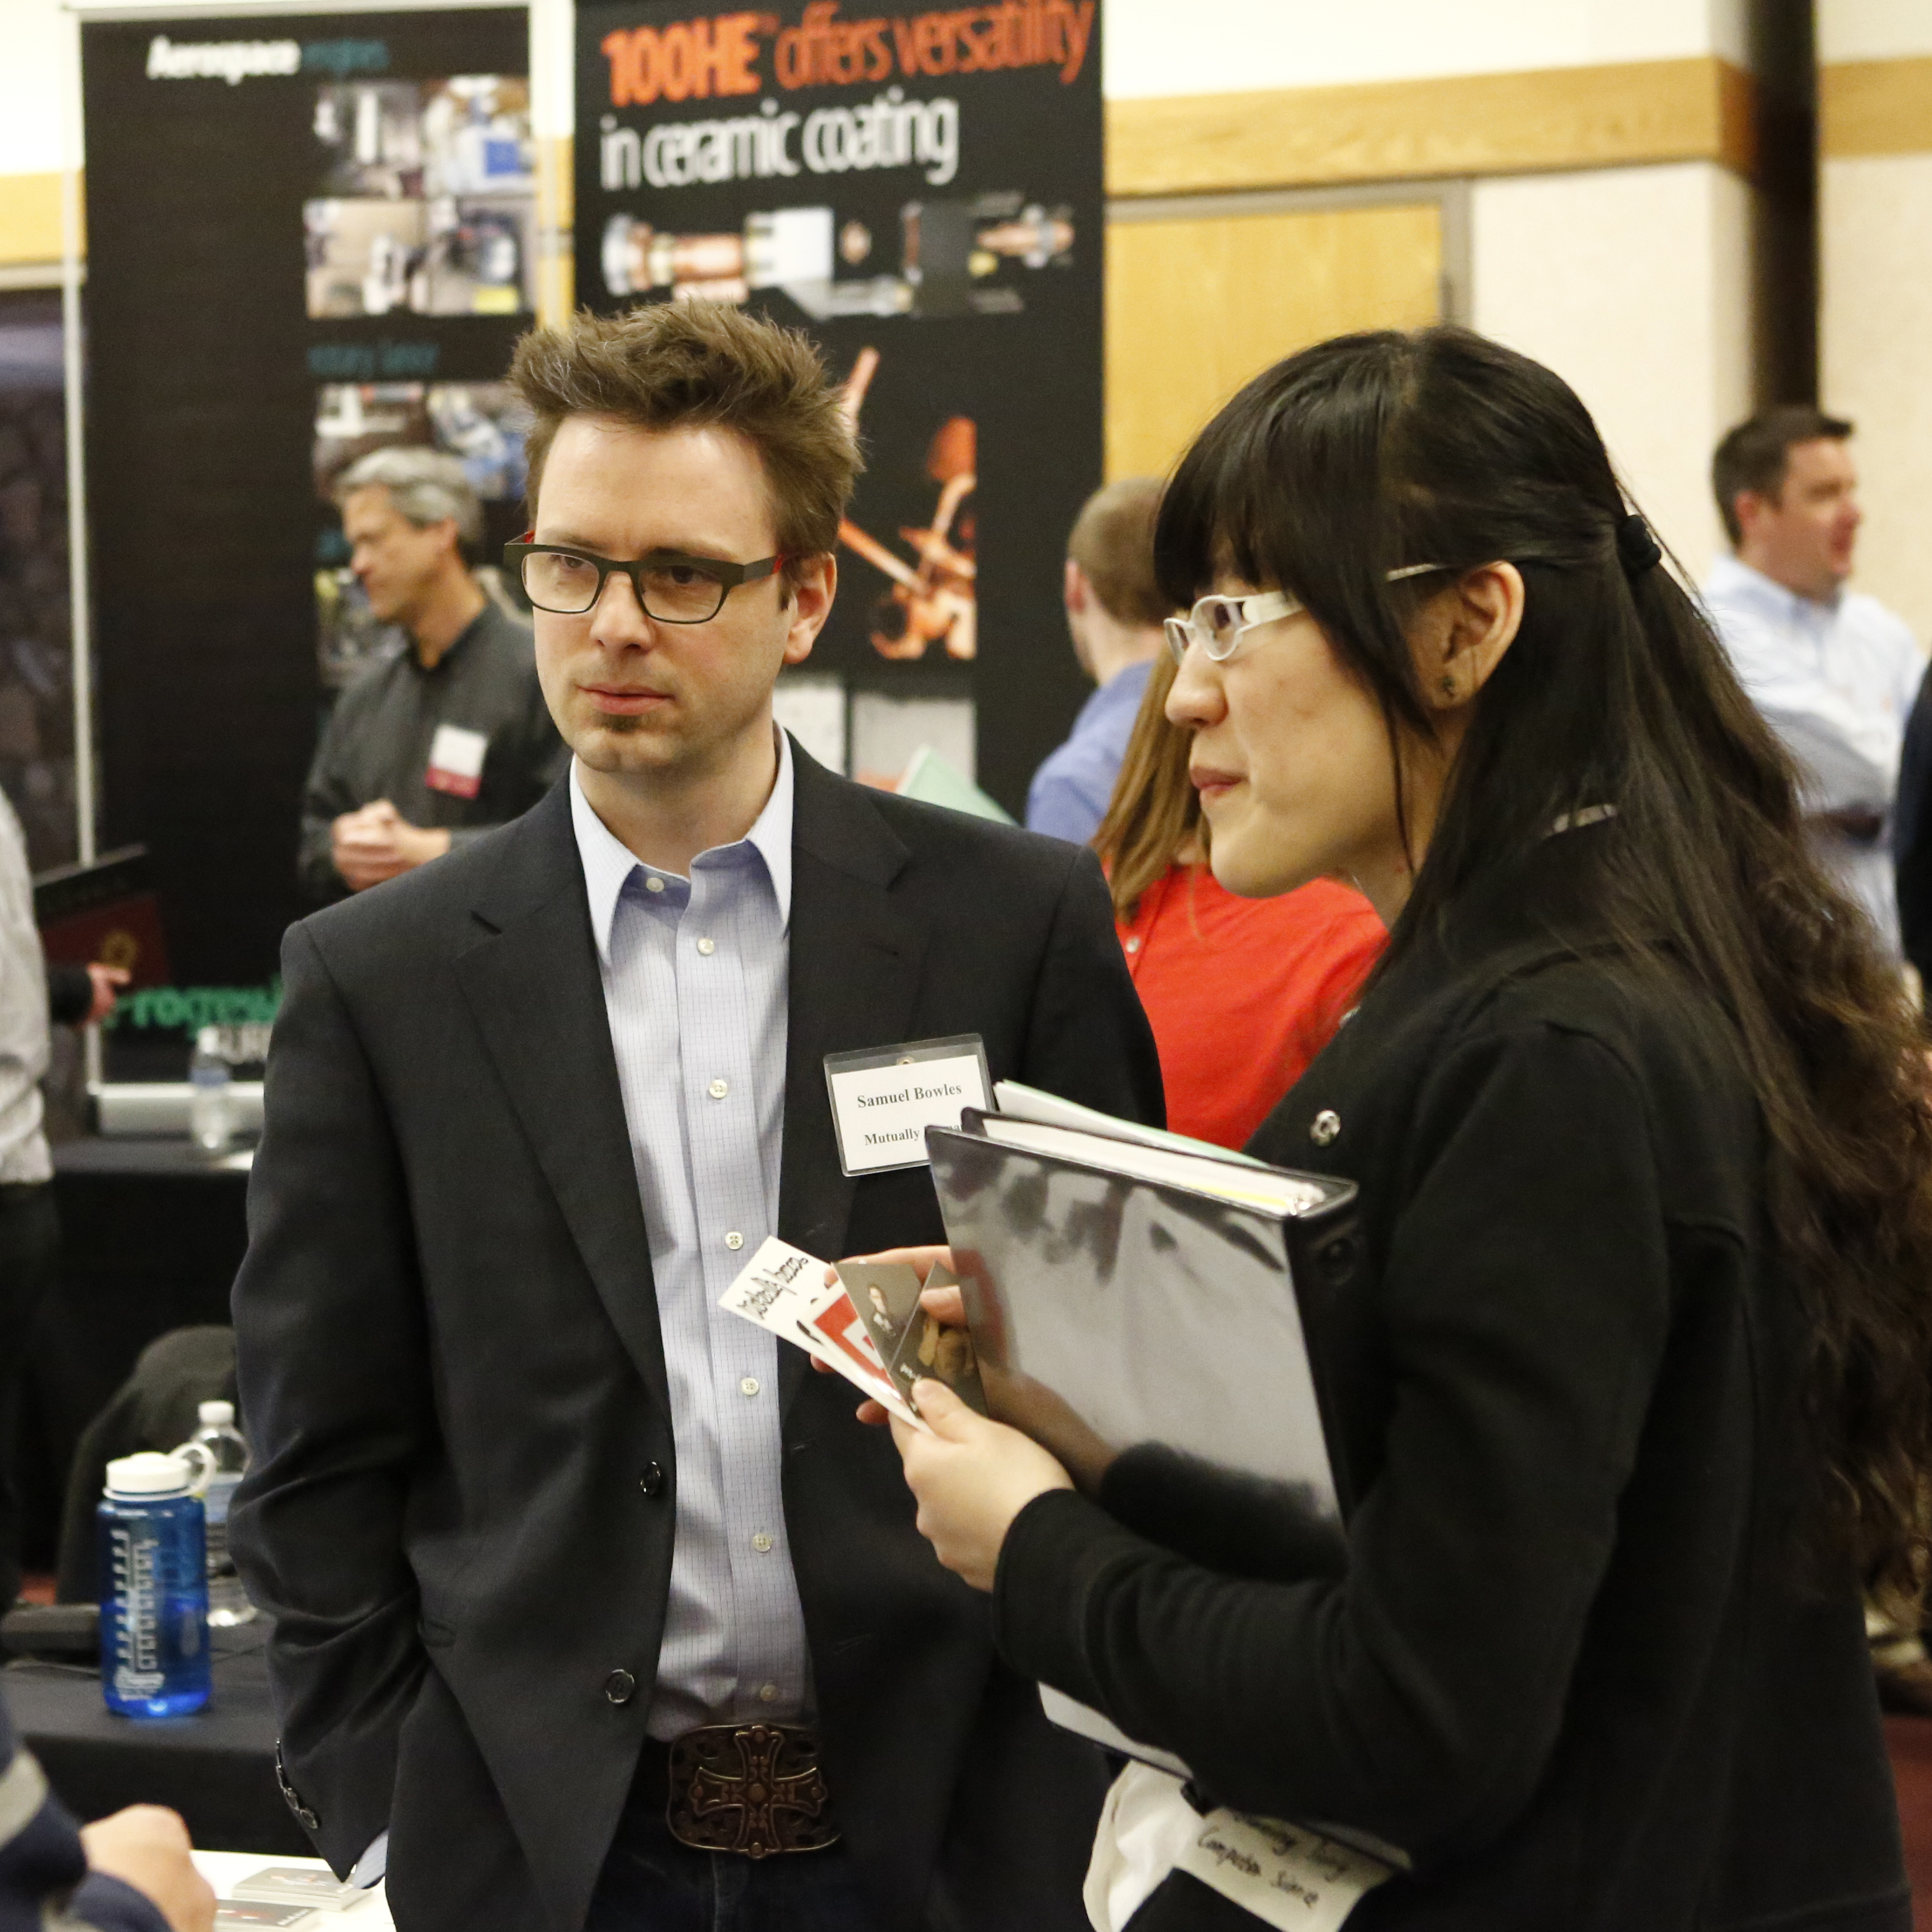 job searching jobs and internships college job fairs events